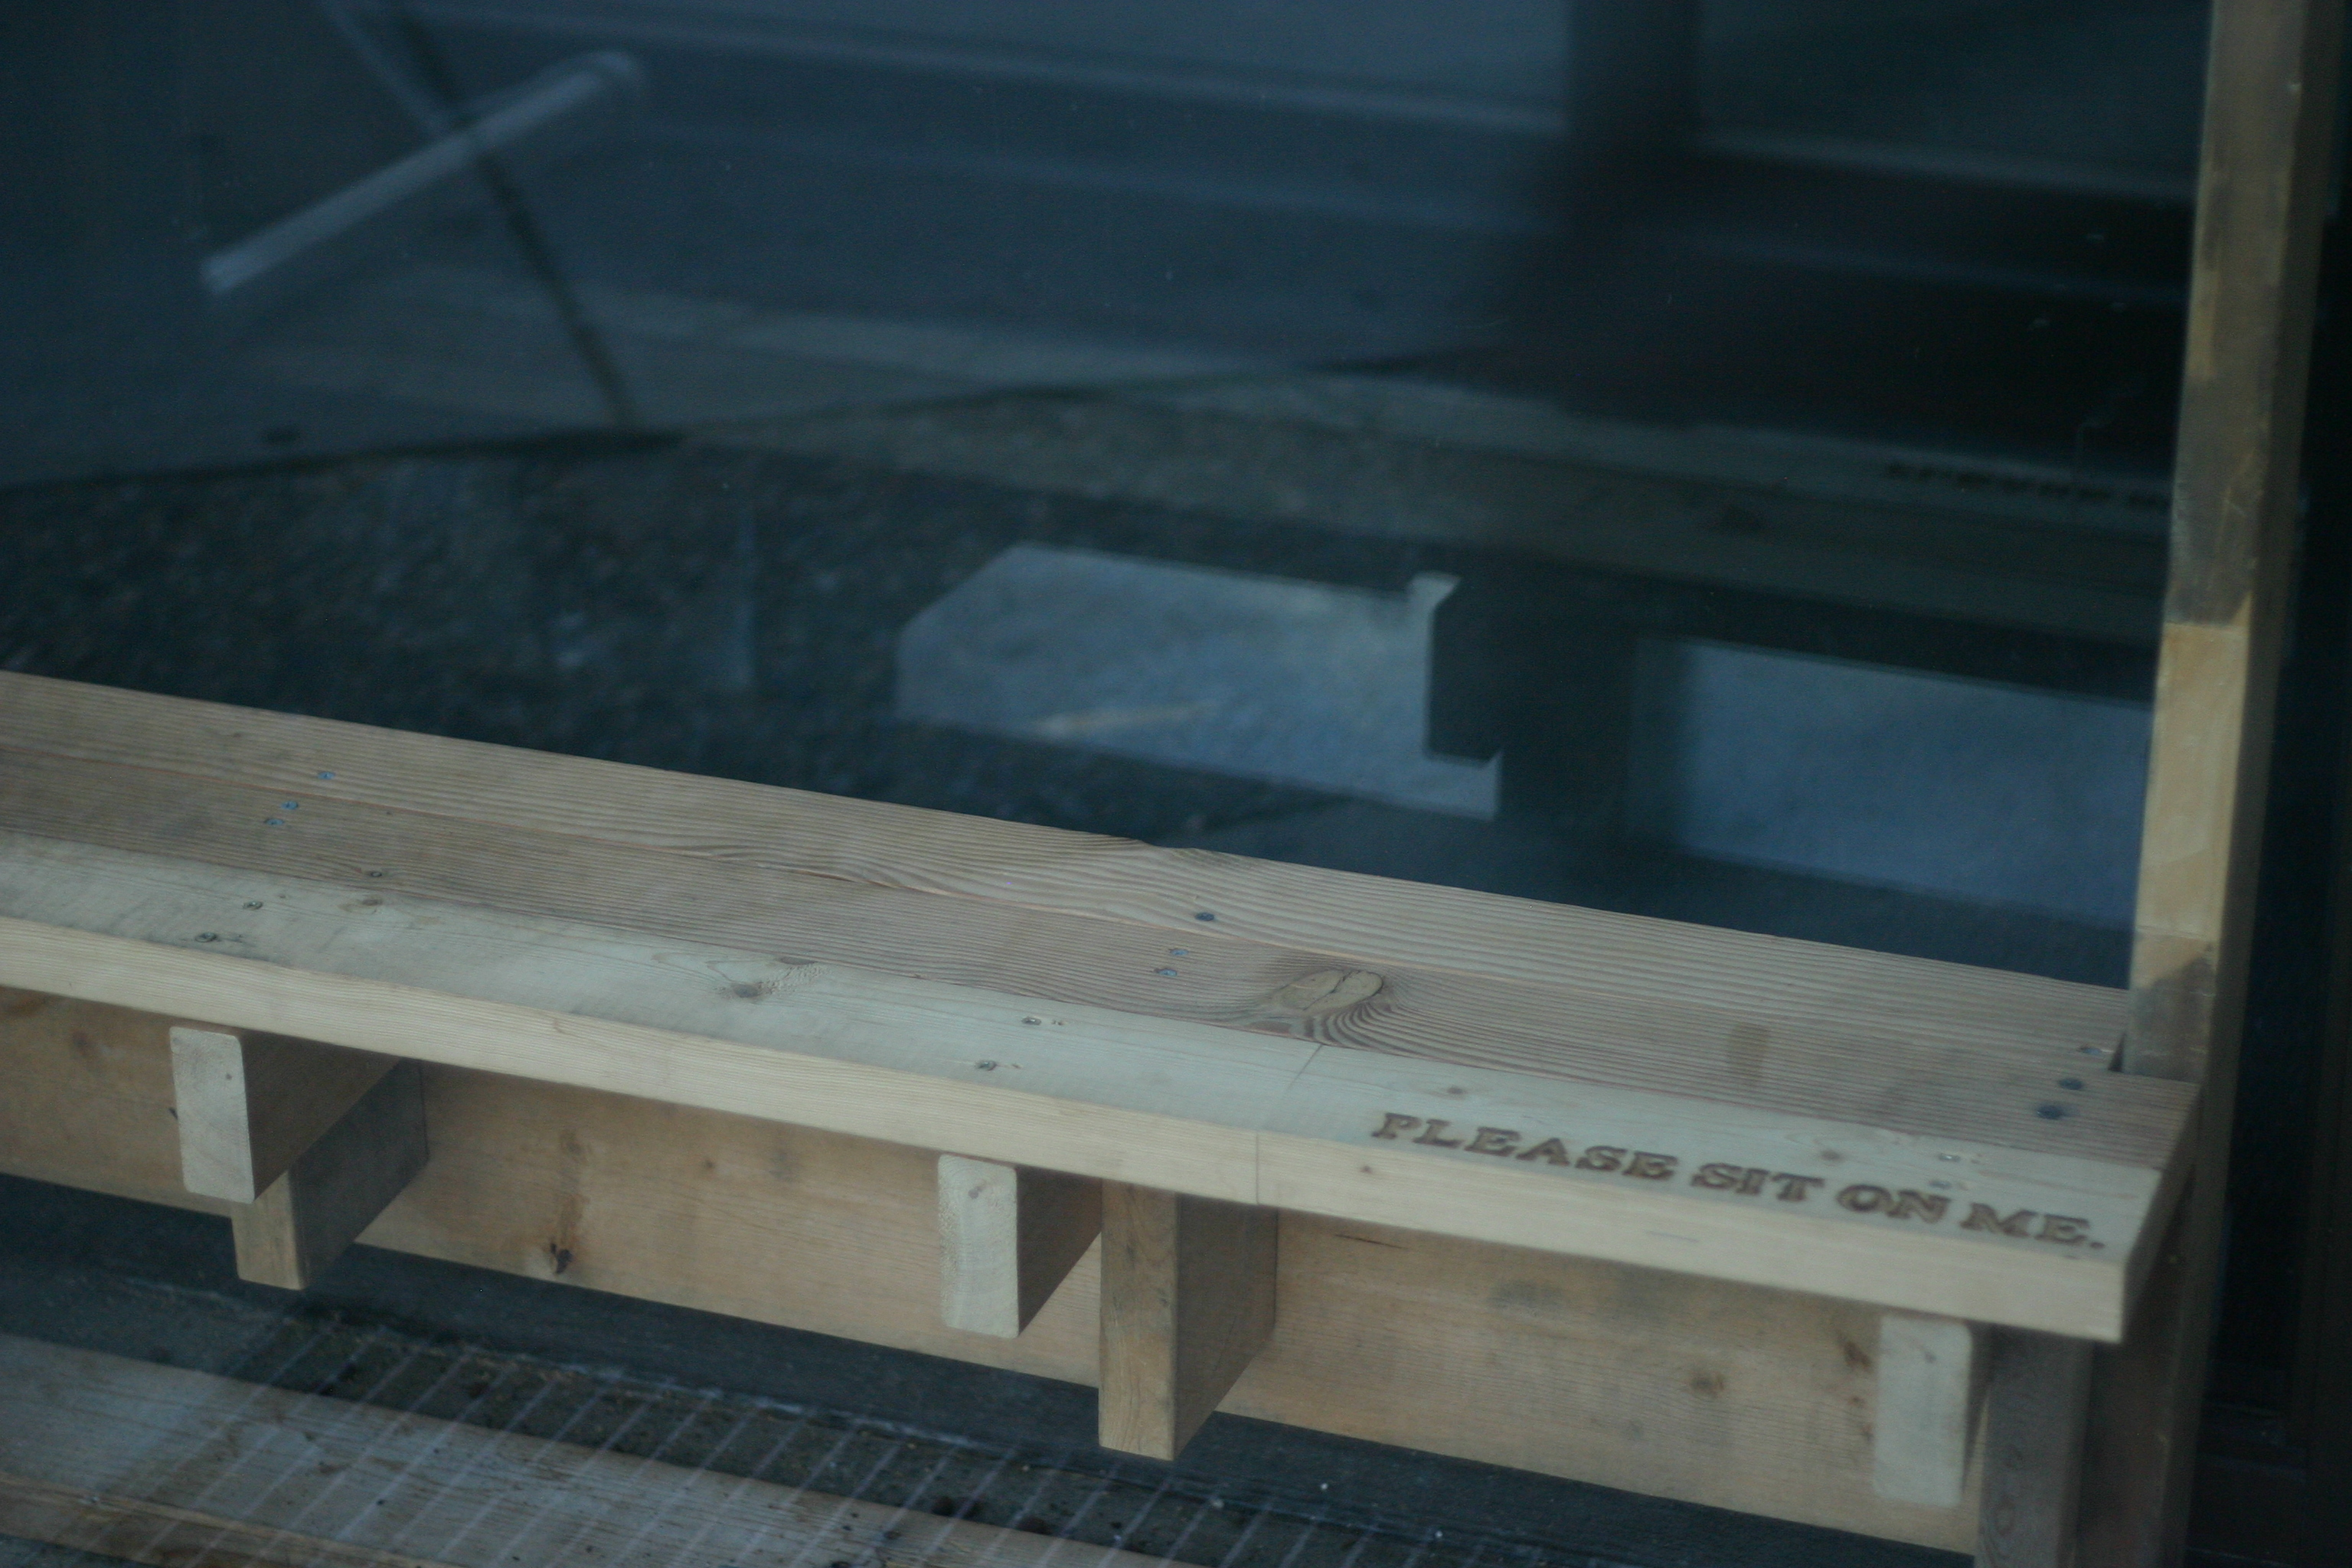 """""""Please Sit On Me"""" - the window farm bench invites passers-by to rest a while."""